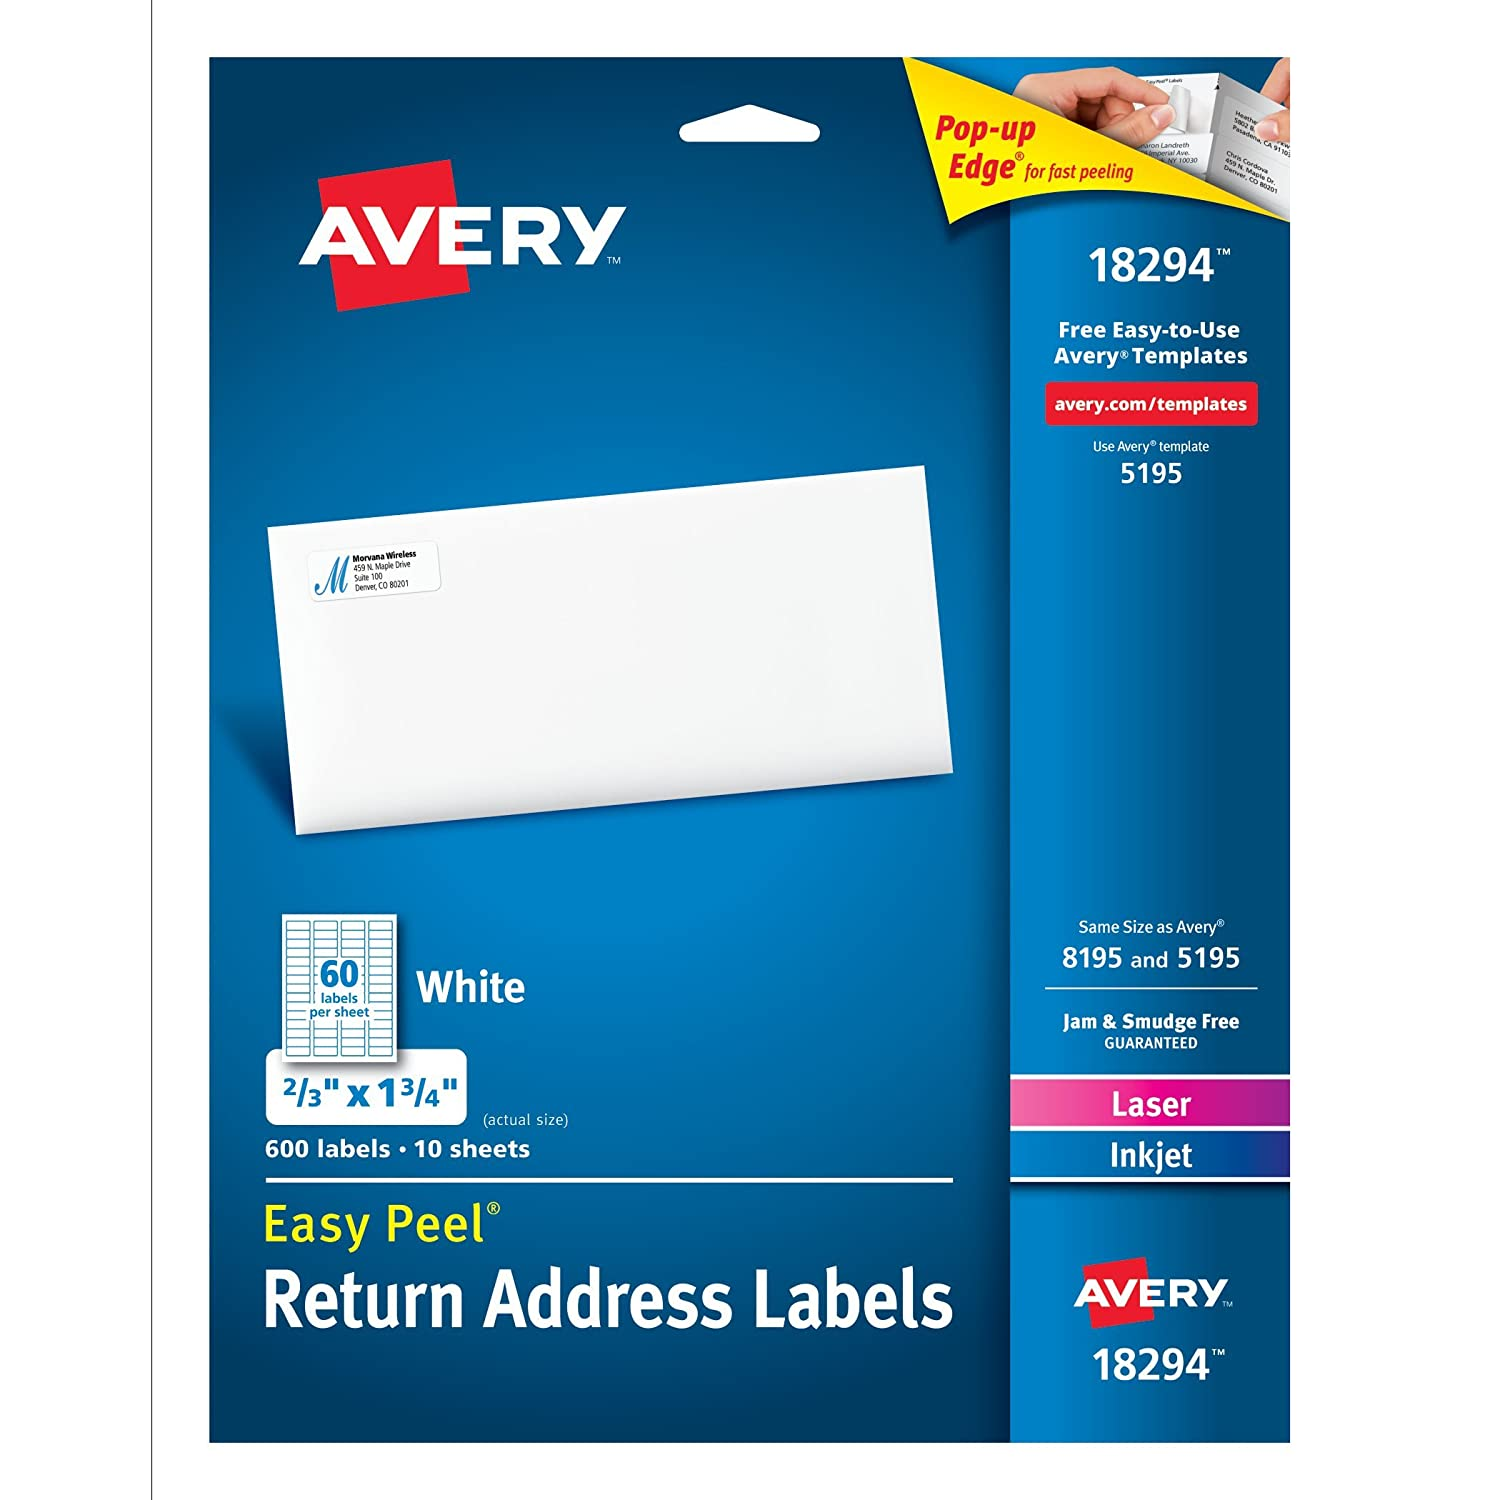 Amazon.com : Avery Return Address Labels, Laser/Inkjet, 2/3 x 1-3 ...